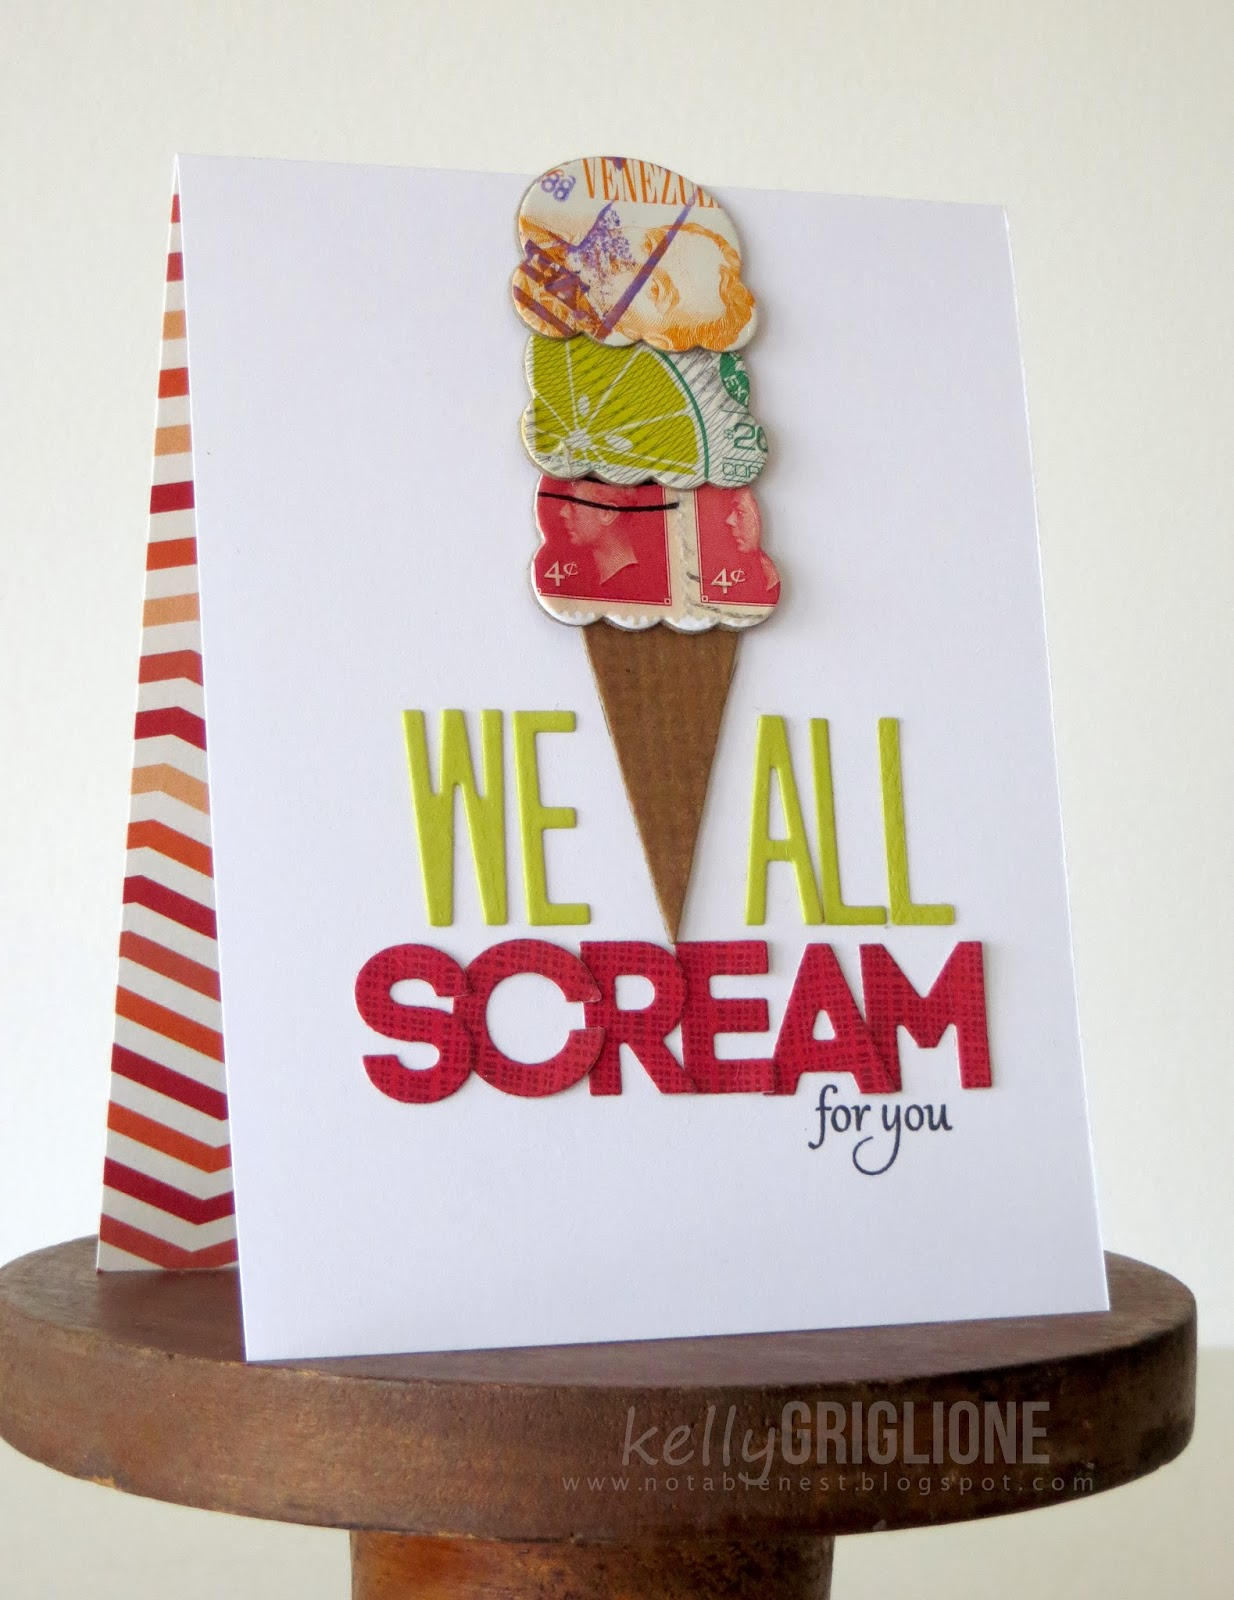 http://notablenest.blogspot.com/2014/03/craft-hoarders-anonymous-i-scream-you.html